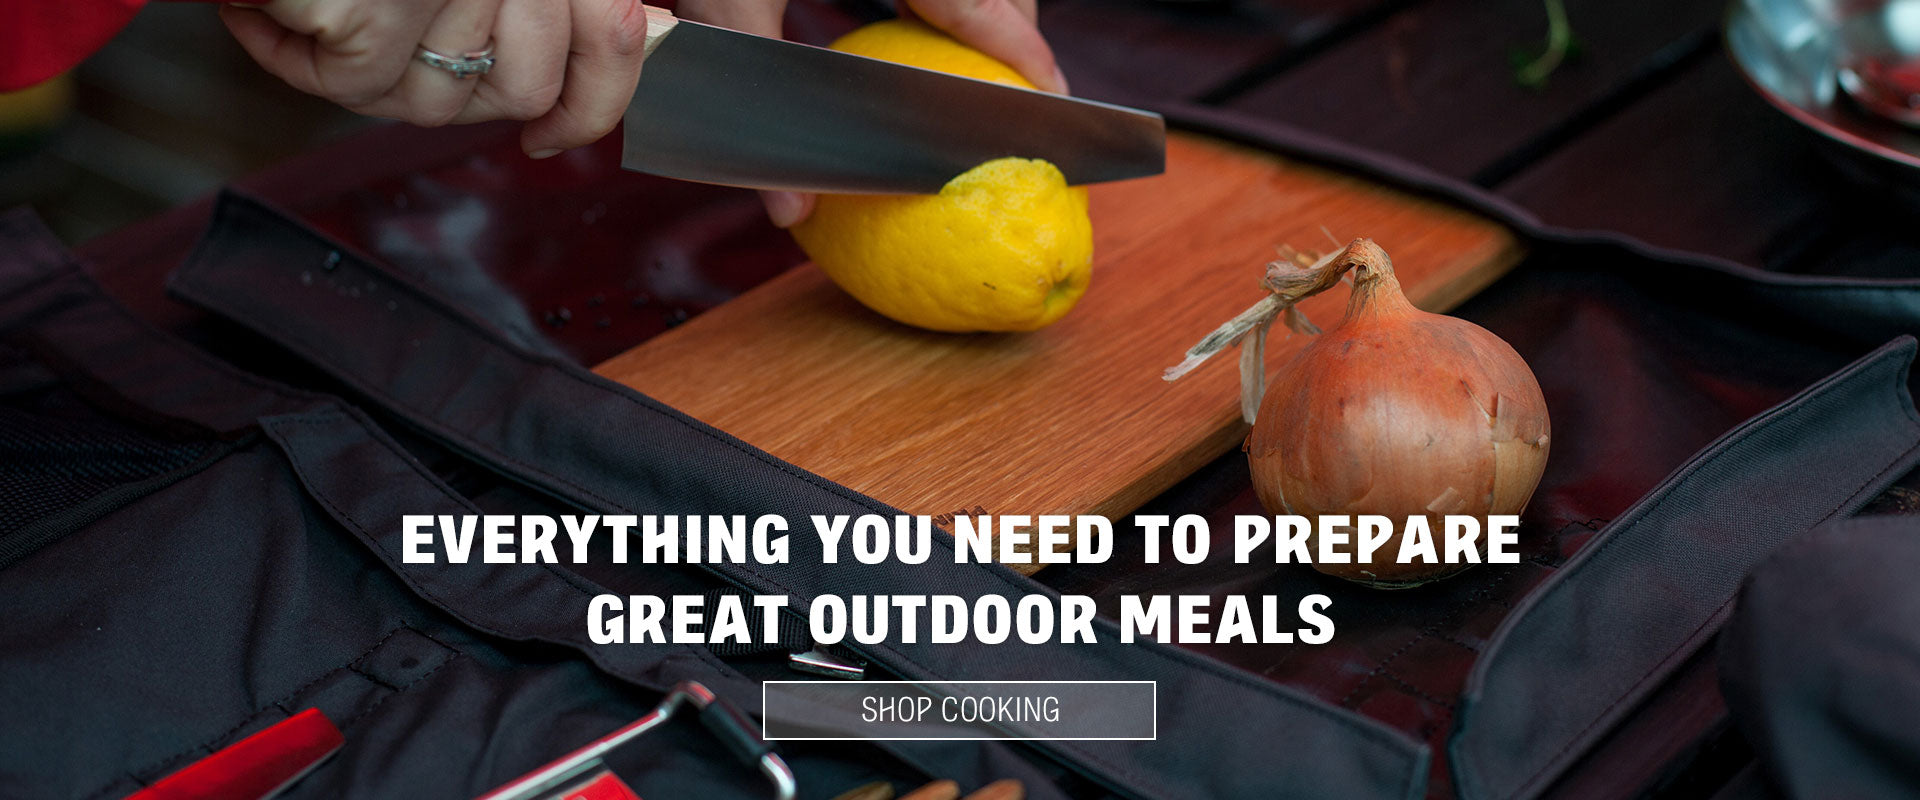 Everything you need to prepare great outdoor meals